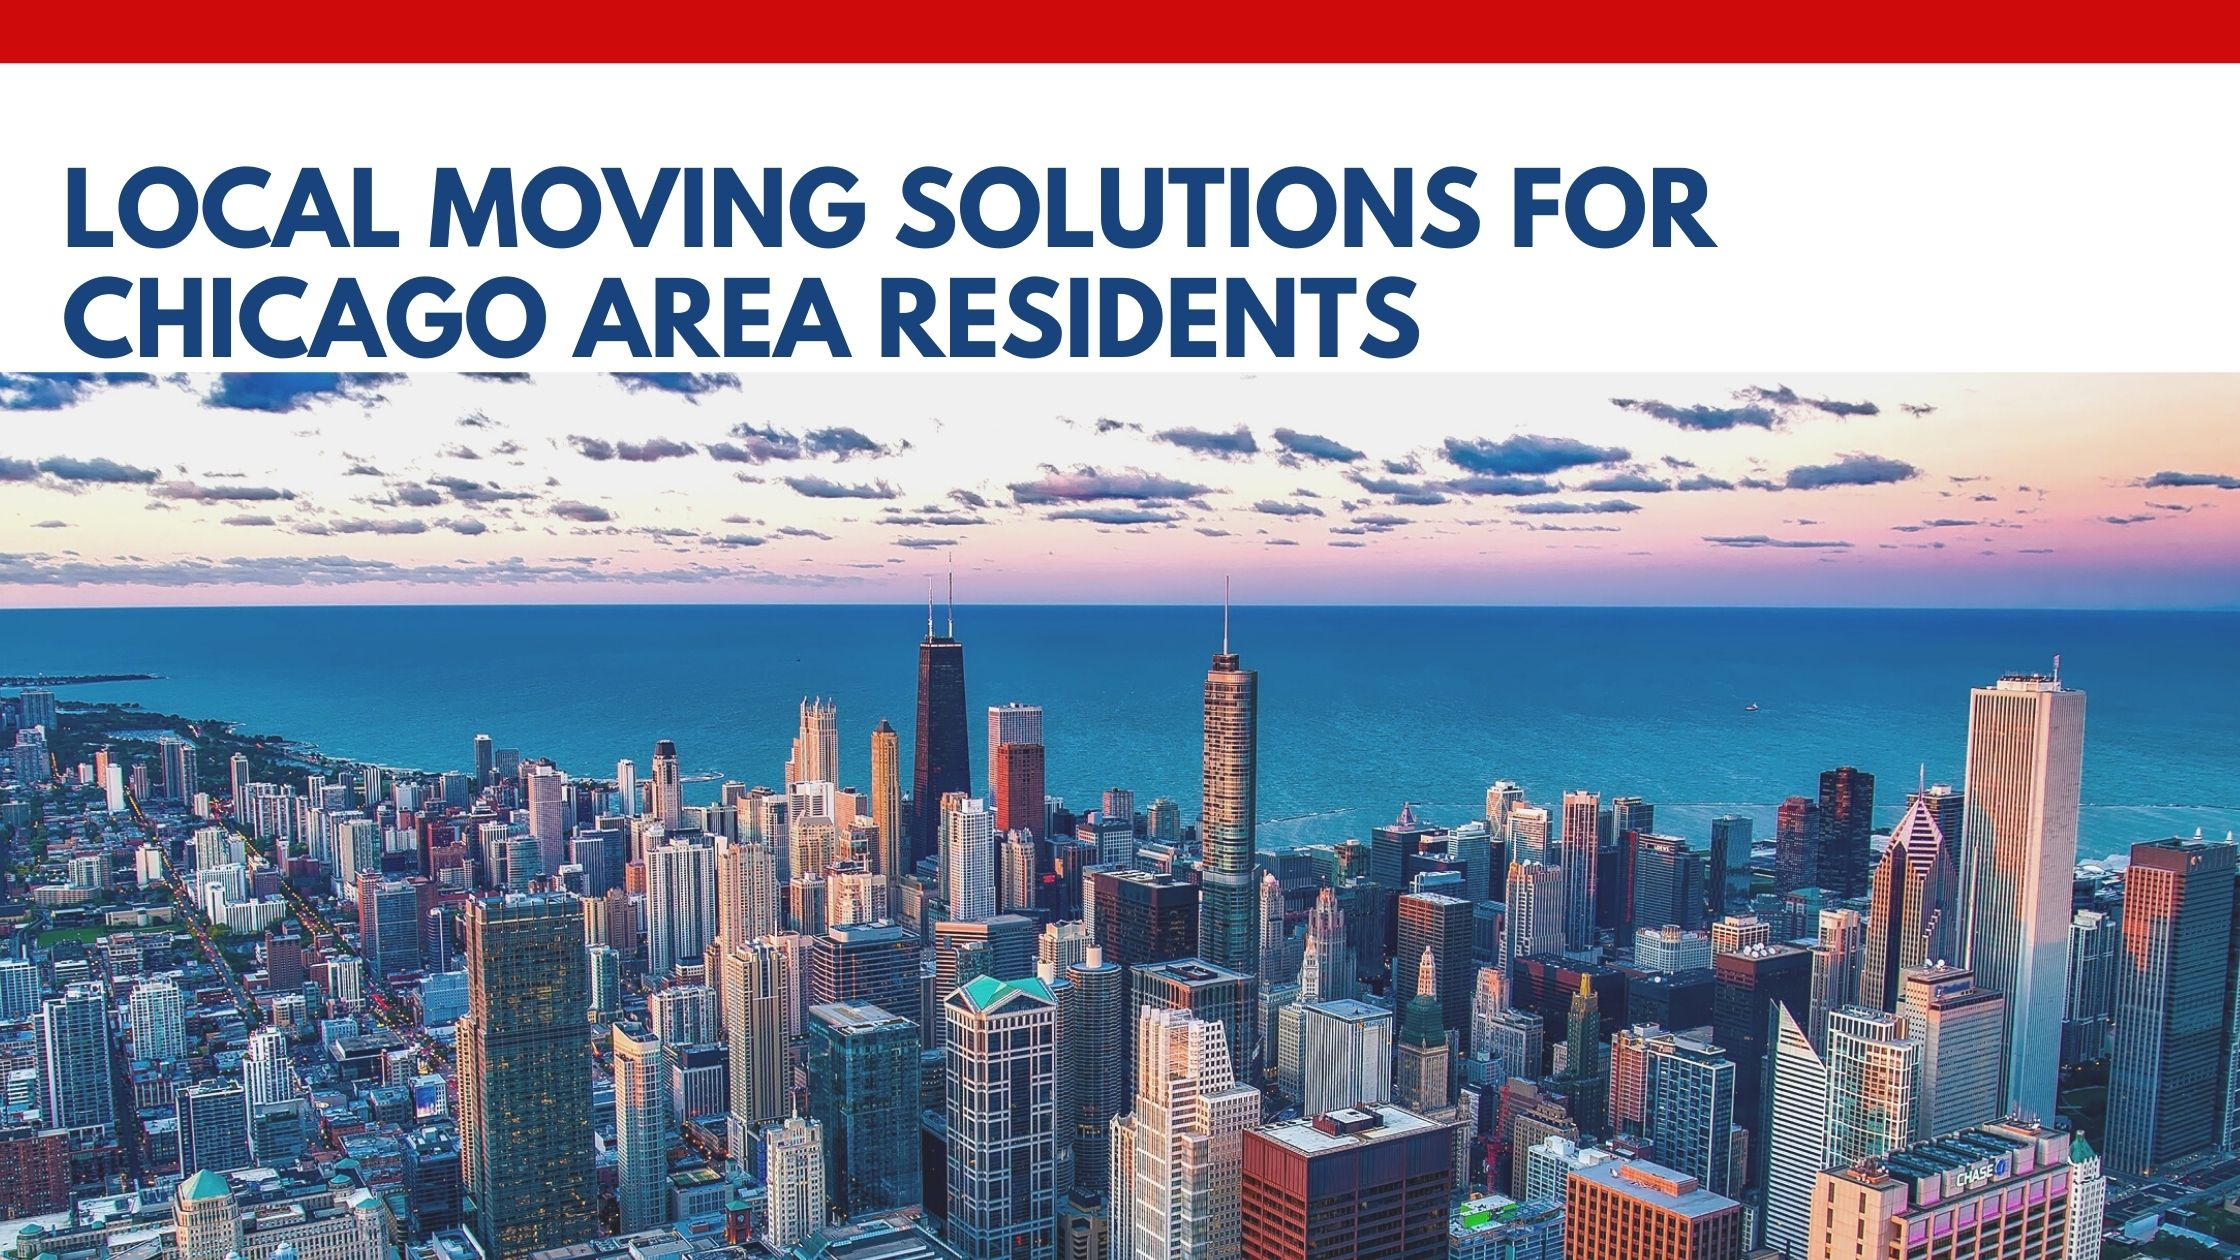 Local Moving Solutions for Chicago Area Residents